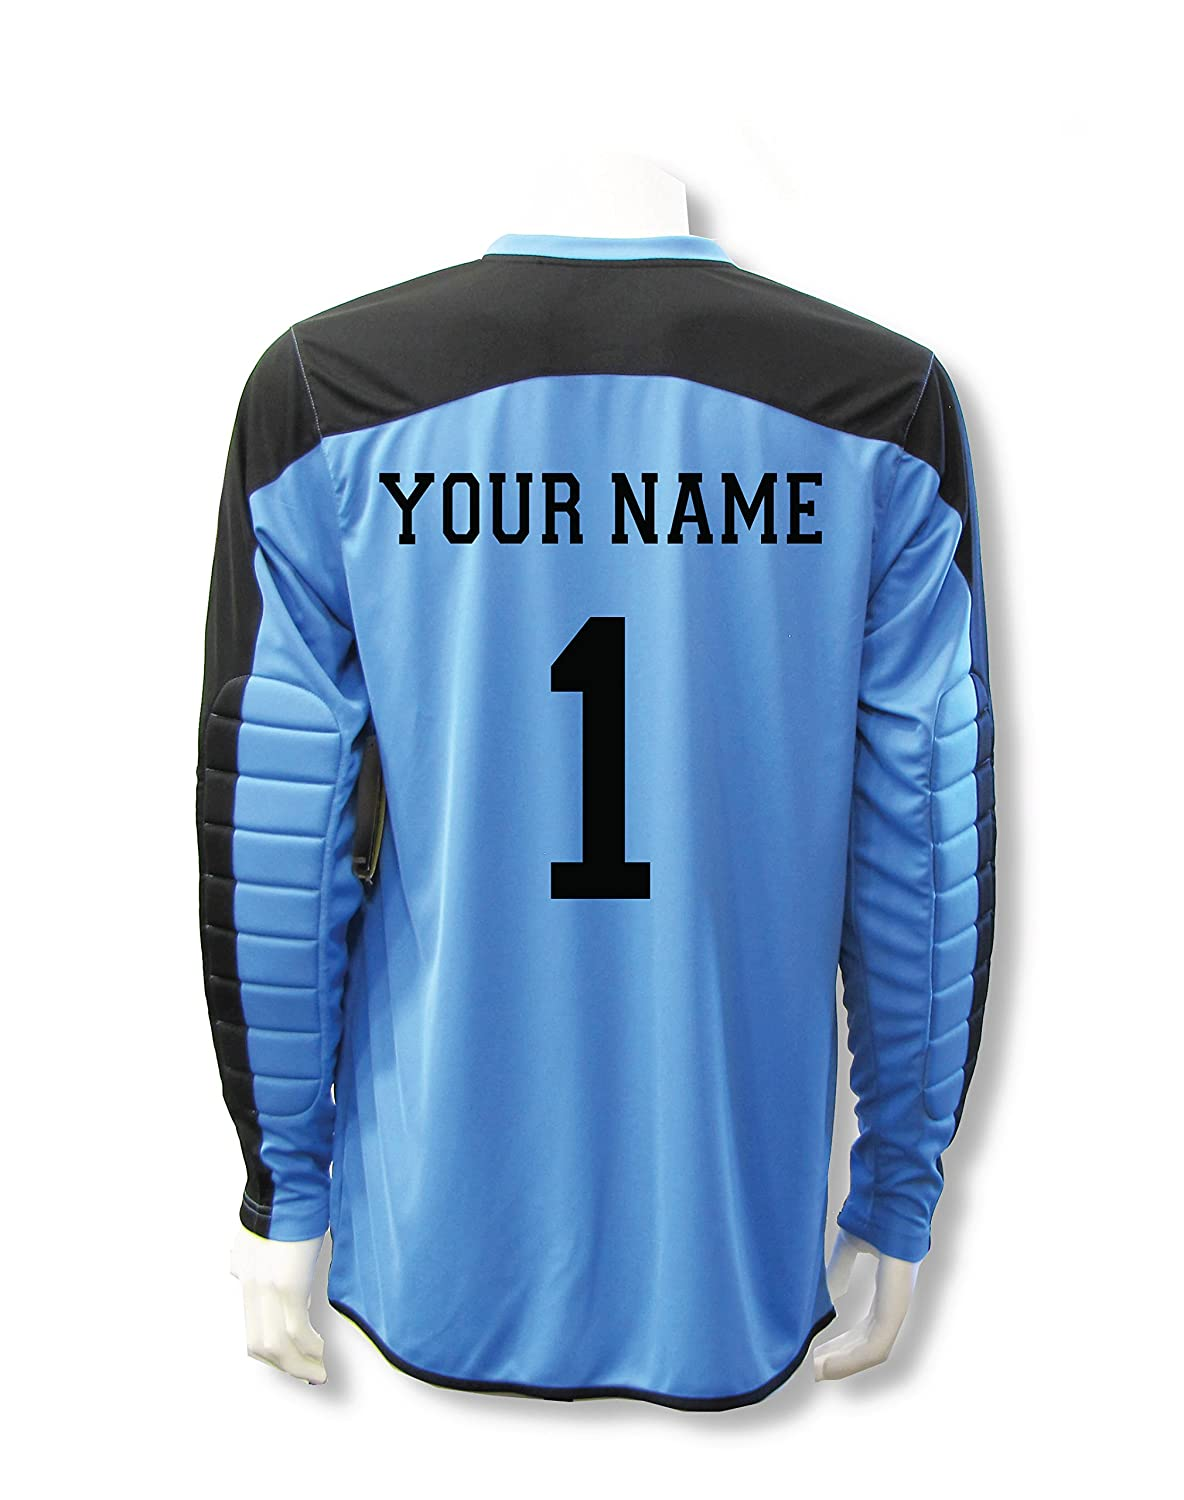 Diadora Enzo Goalkeeper Jersey Personalized with your name and number B076PVG9D6 X-Large|ブルー(Columbia Blue) ブルー(Columbia Blue) X-Large